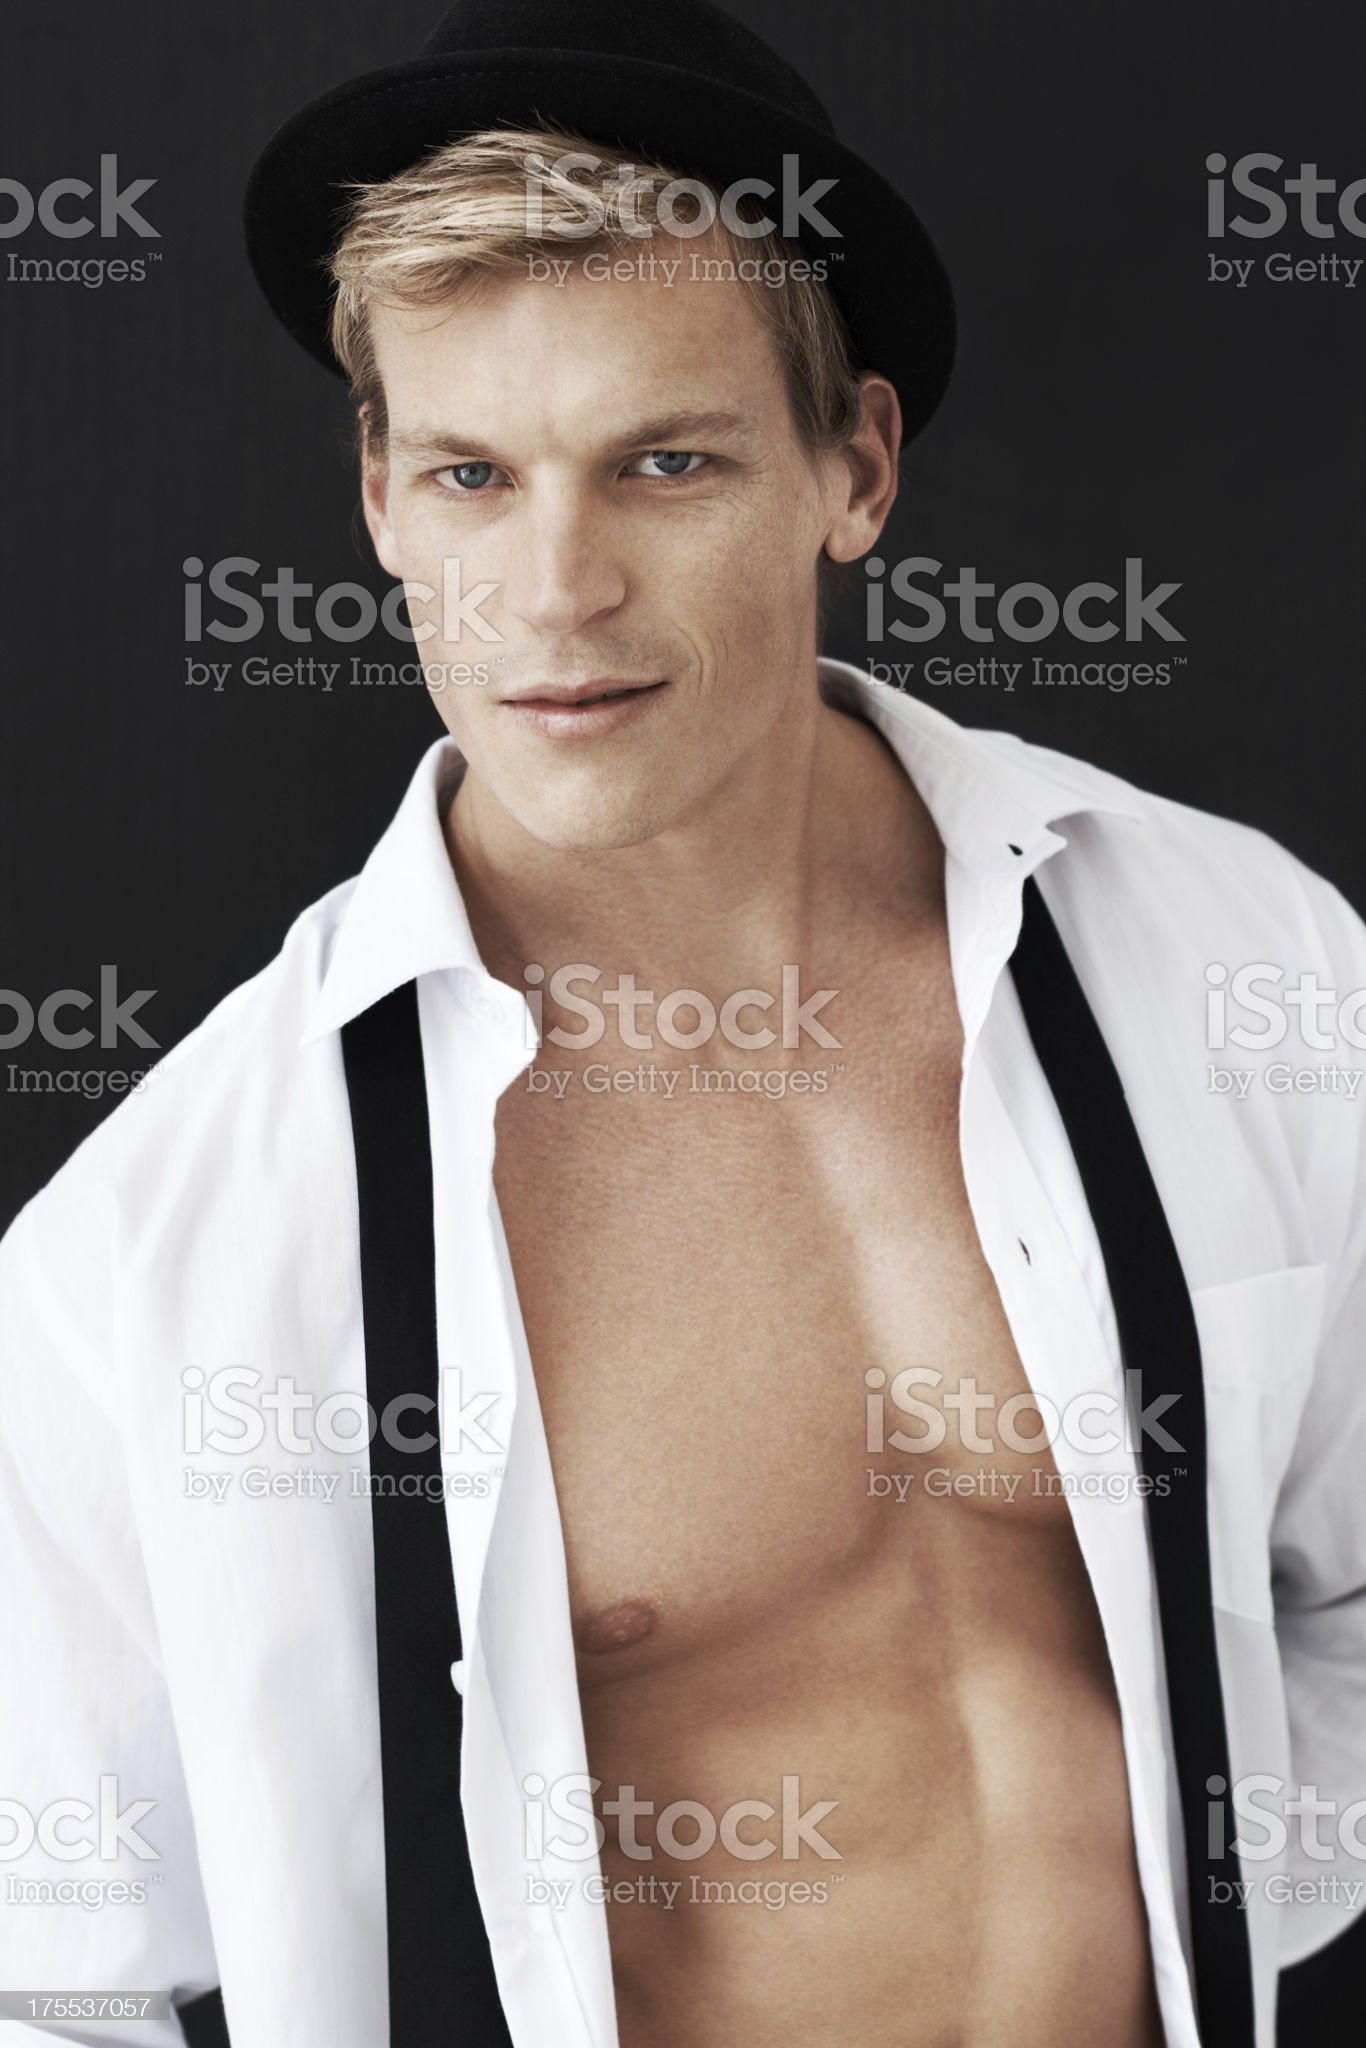 He makes being cool look easy royalty-free stock photo